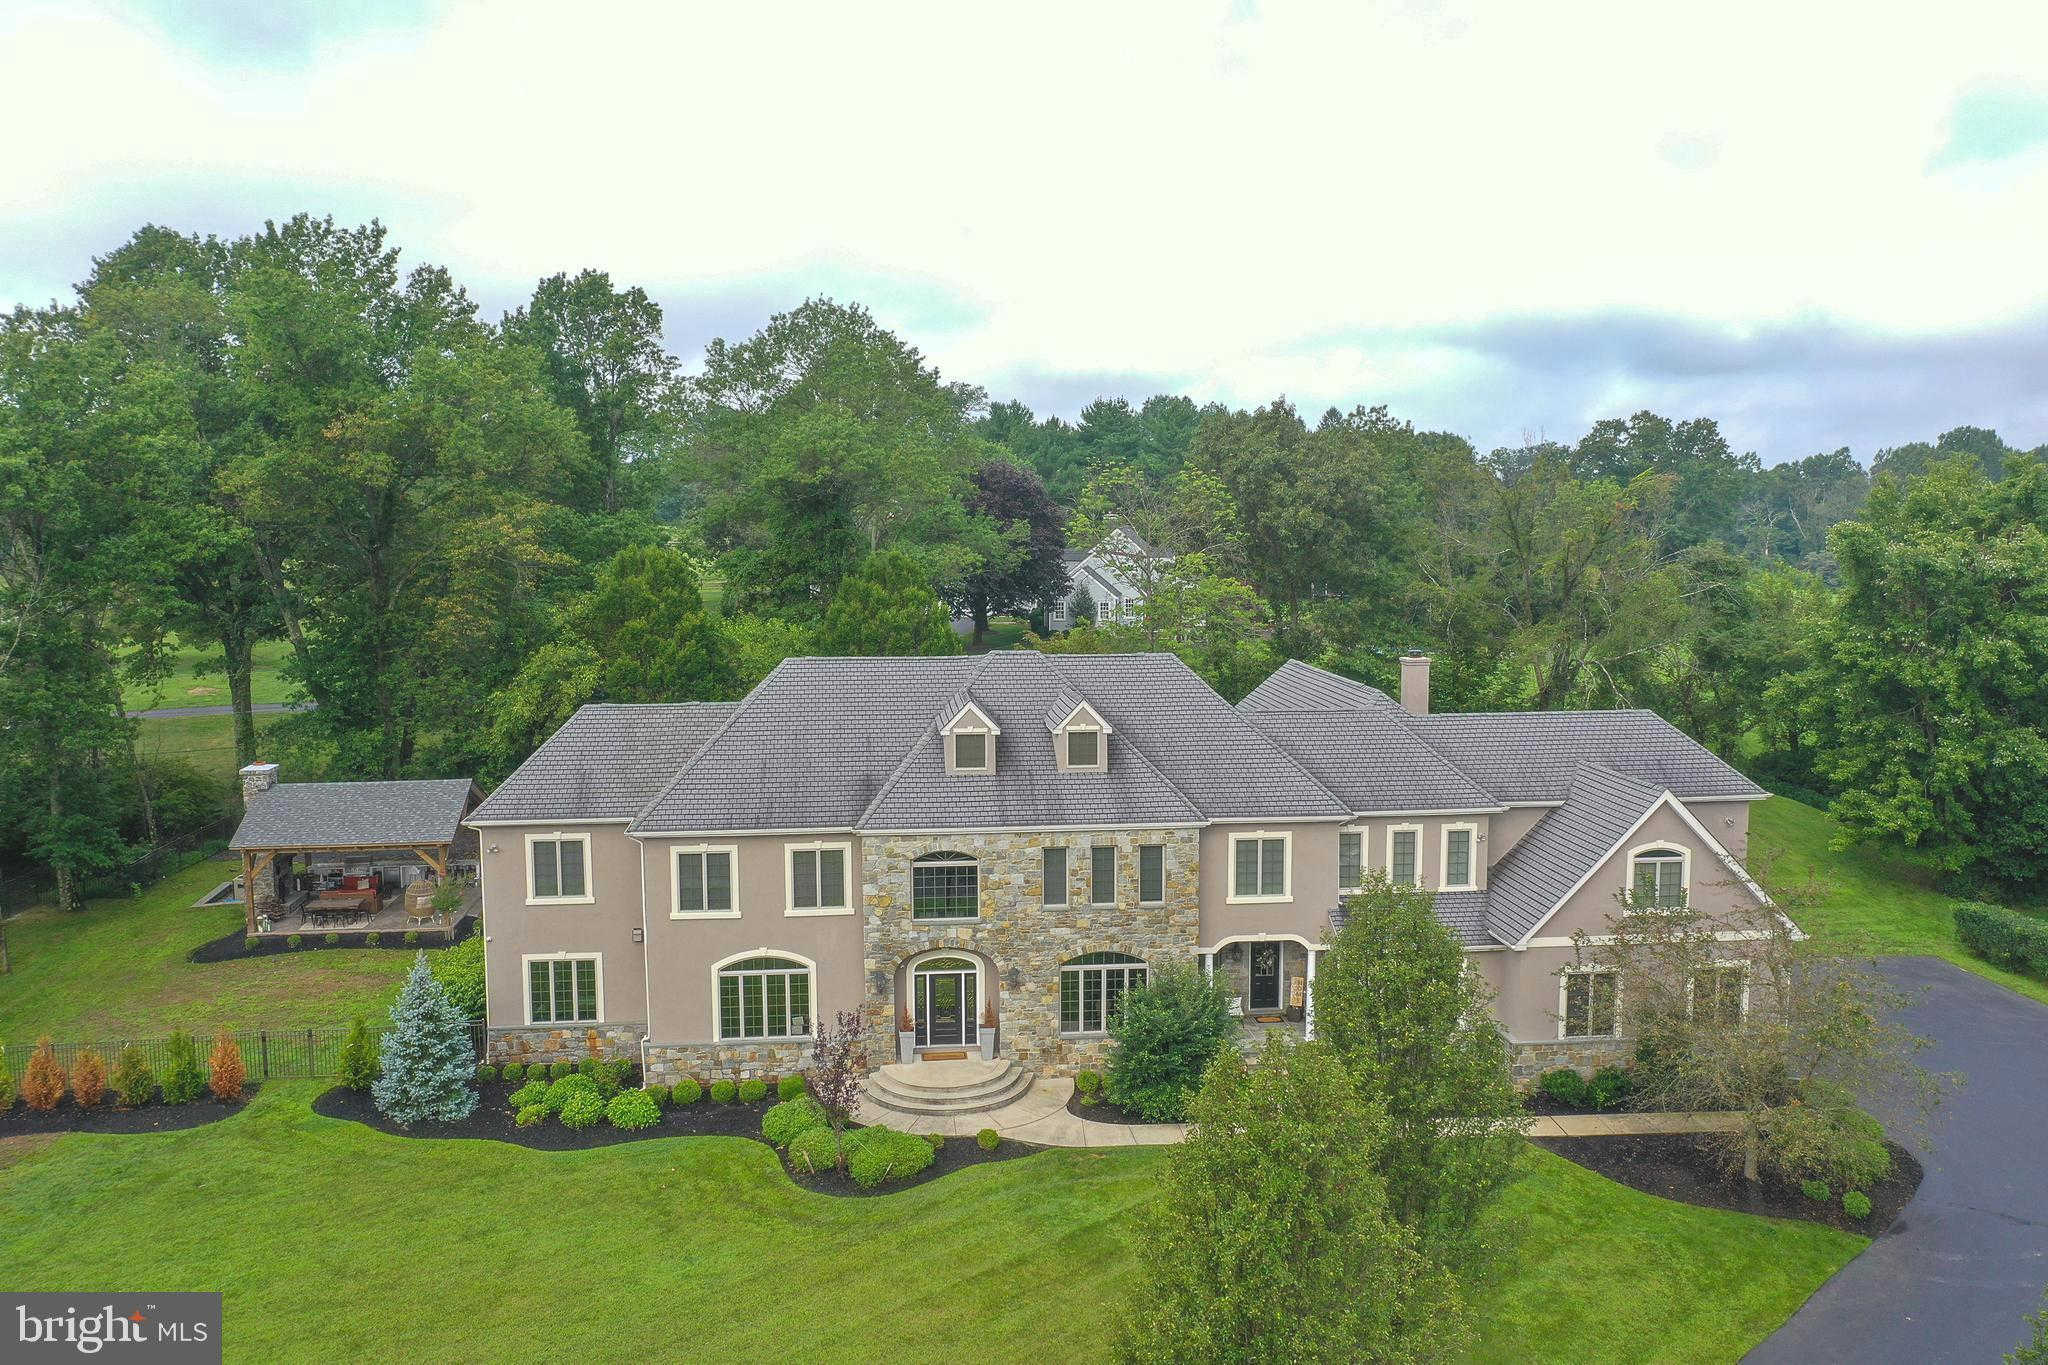 1 Bryce Lane, Newtown, PA 18940 now has a new price of $1,797,000!